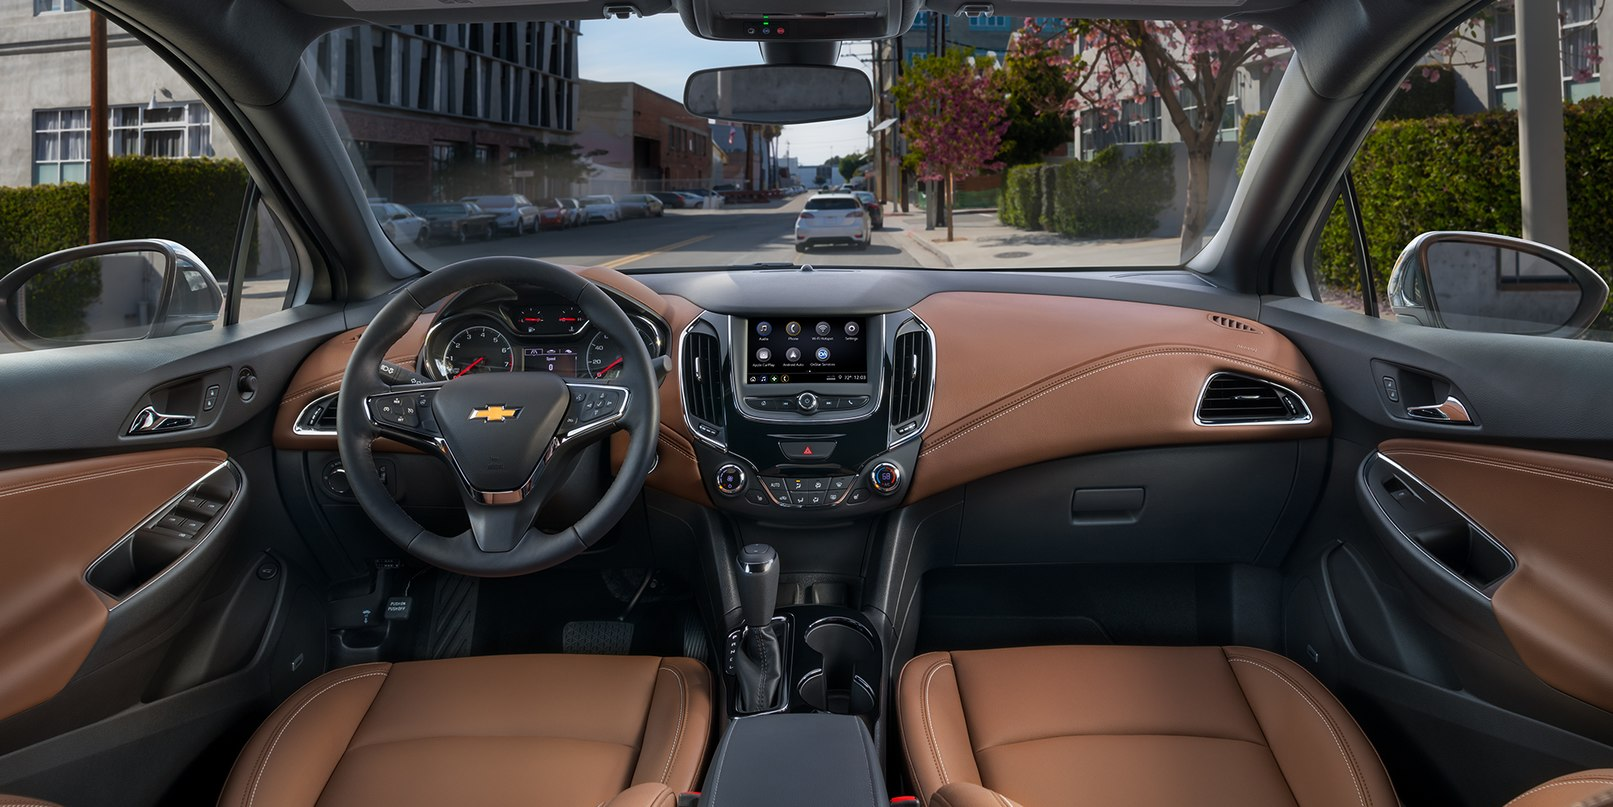 Interior of the 2019 Chevrolet Cruze